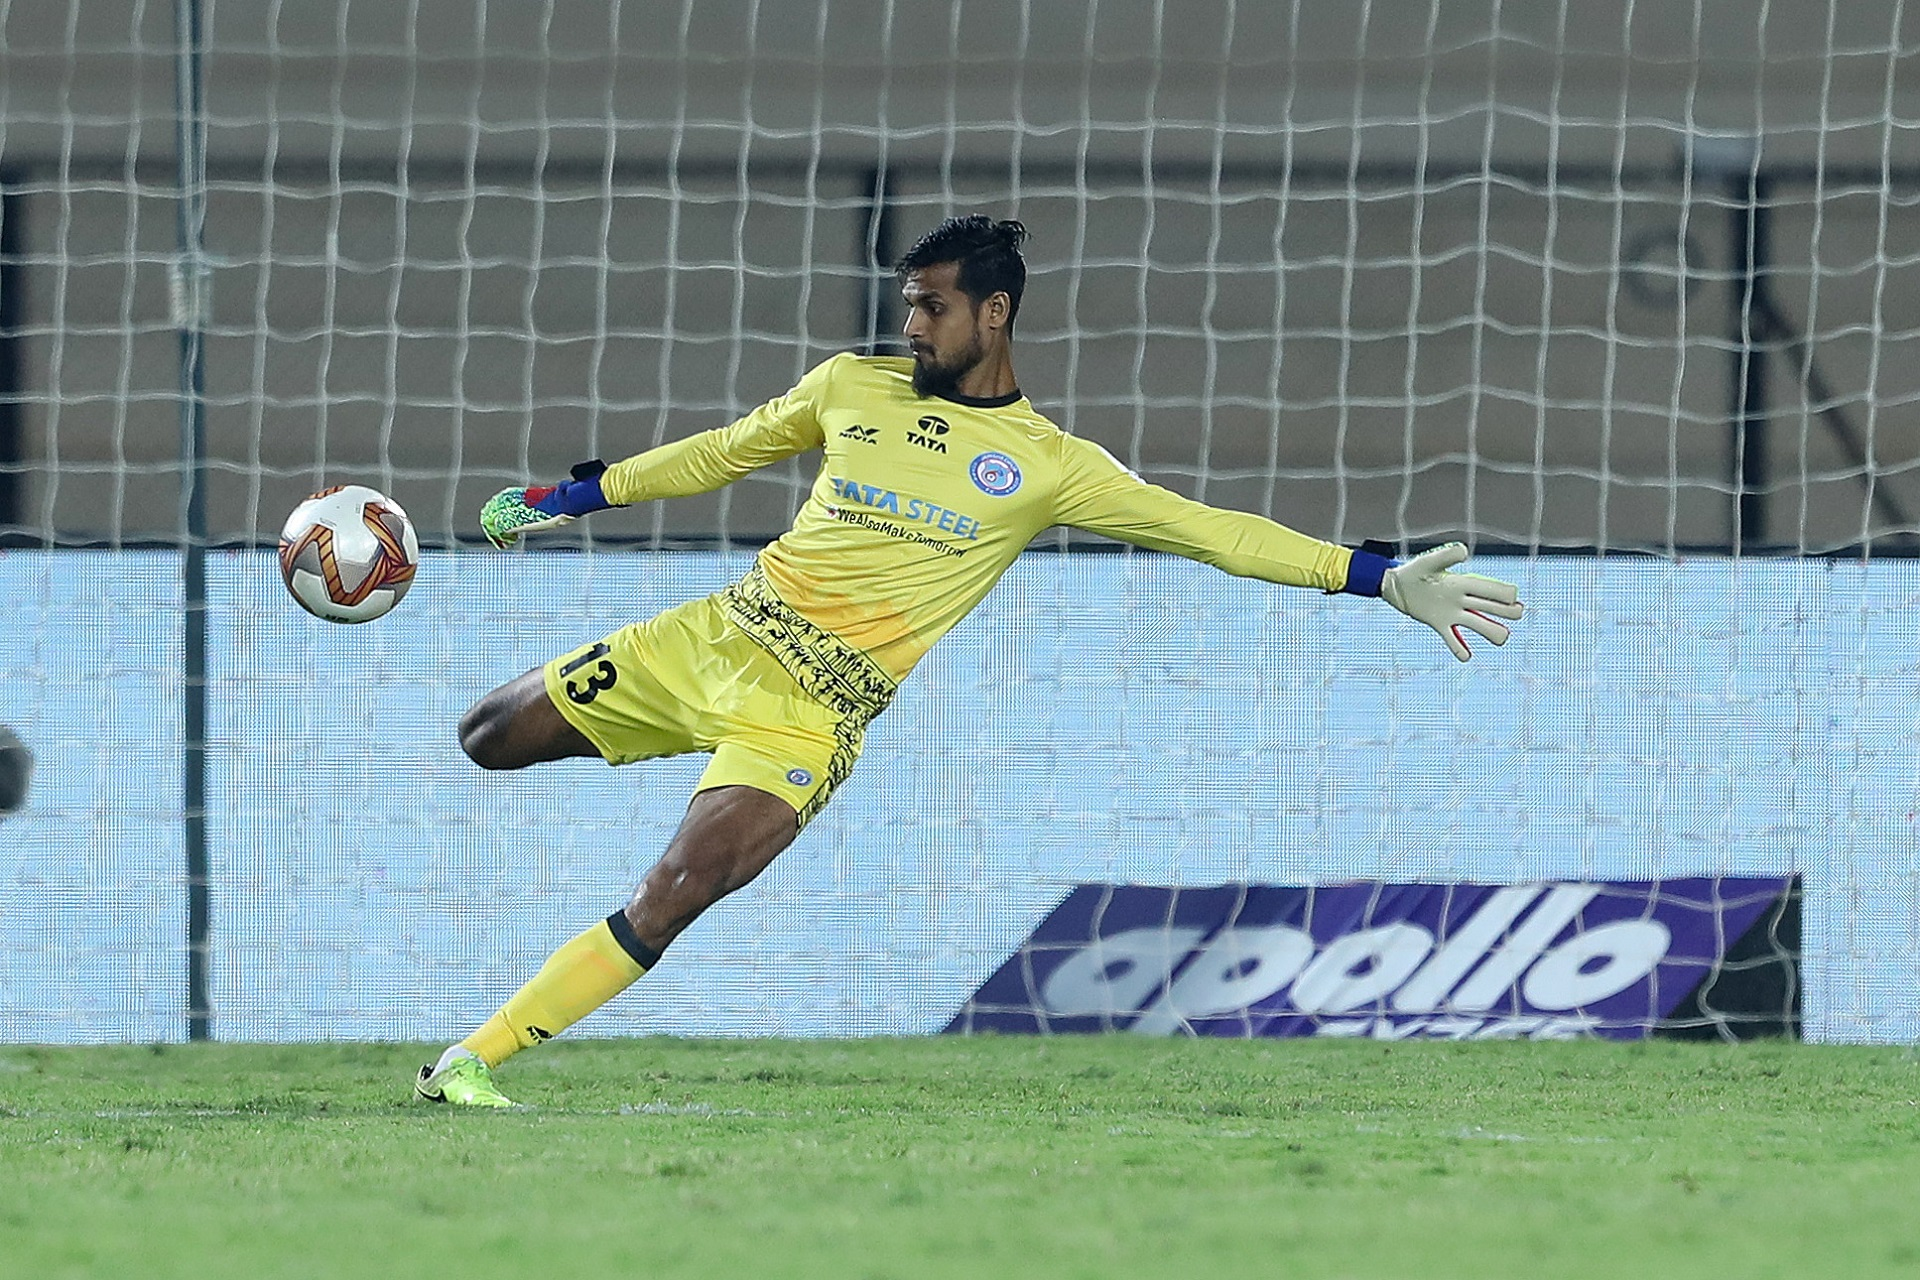 Goalkeeper Md. Rafique Ali Sardar made his second consecutive Hero ISL start for Jamshedpur FC as veteran Subrata Paul was named on the bench against Hyderabad FC.